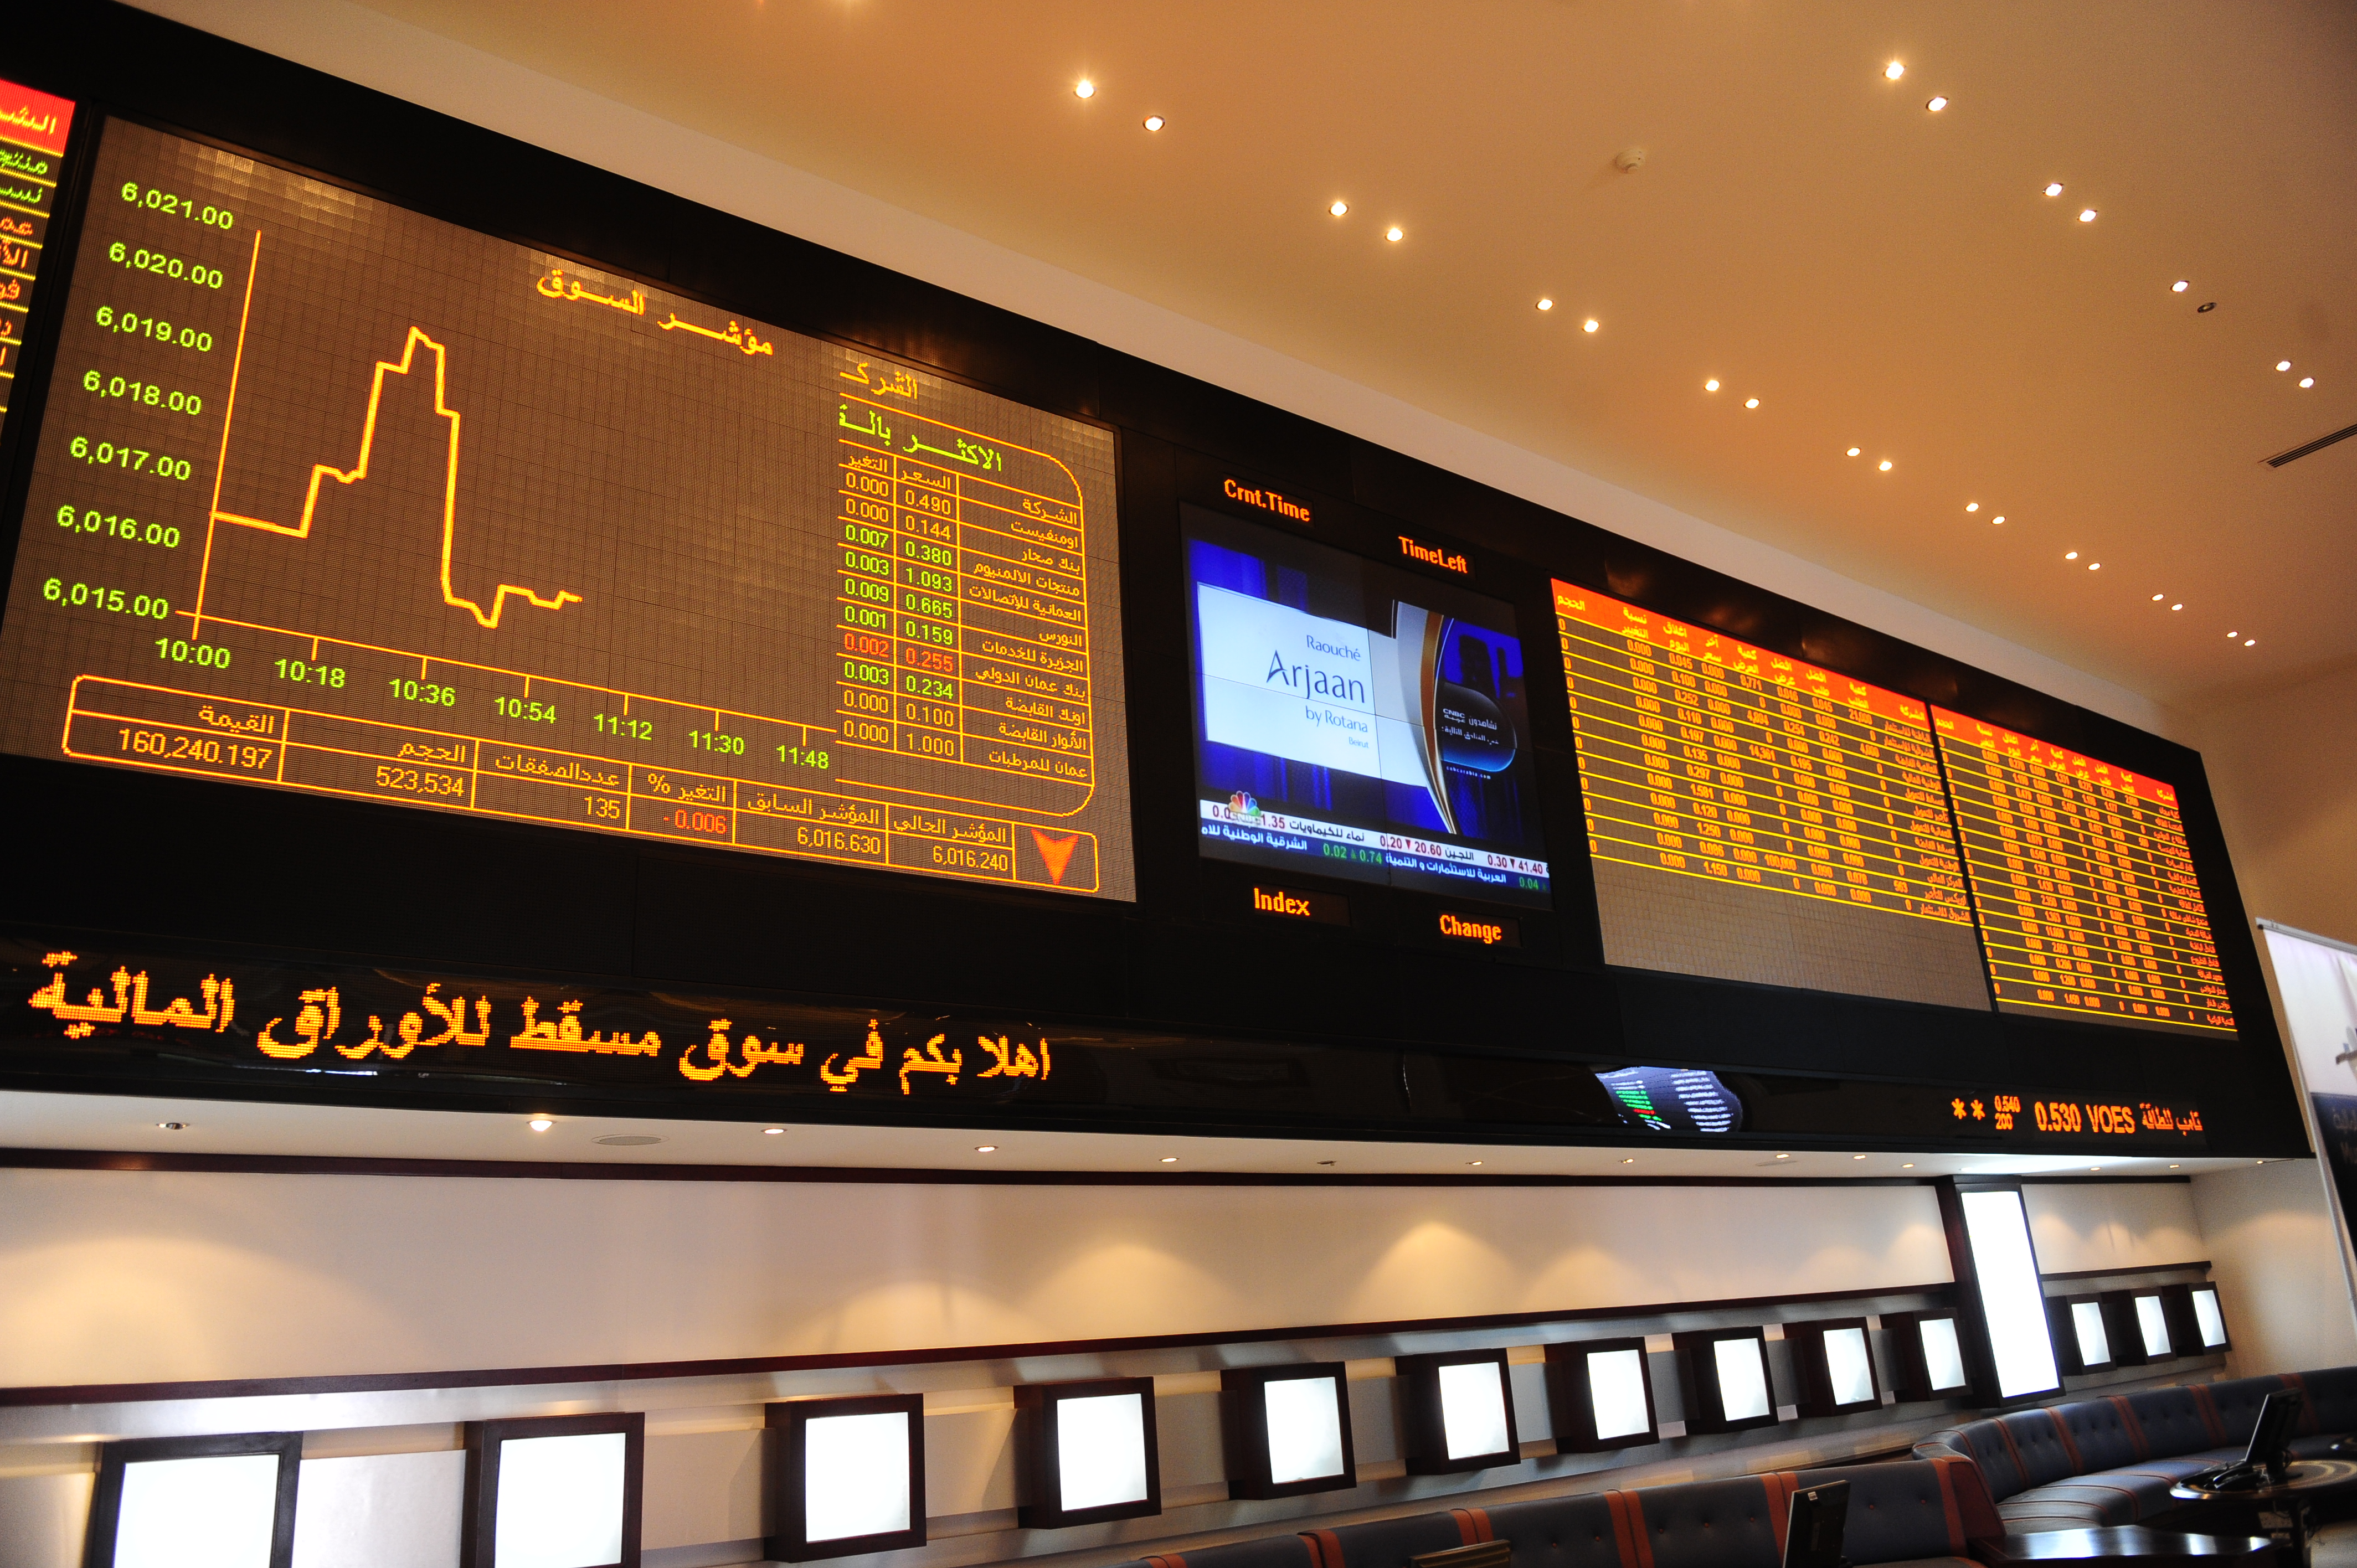 Oman shares continue to make gains